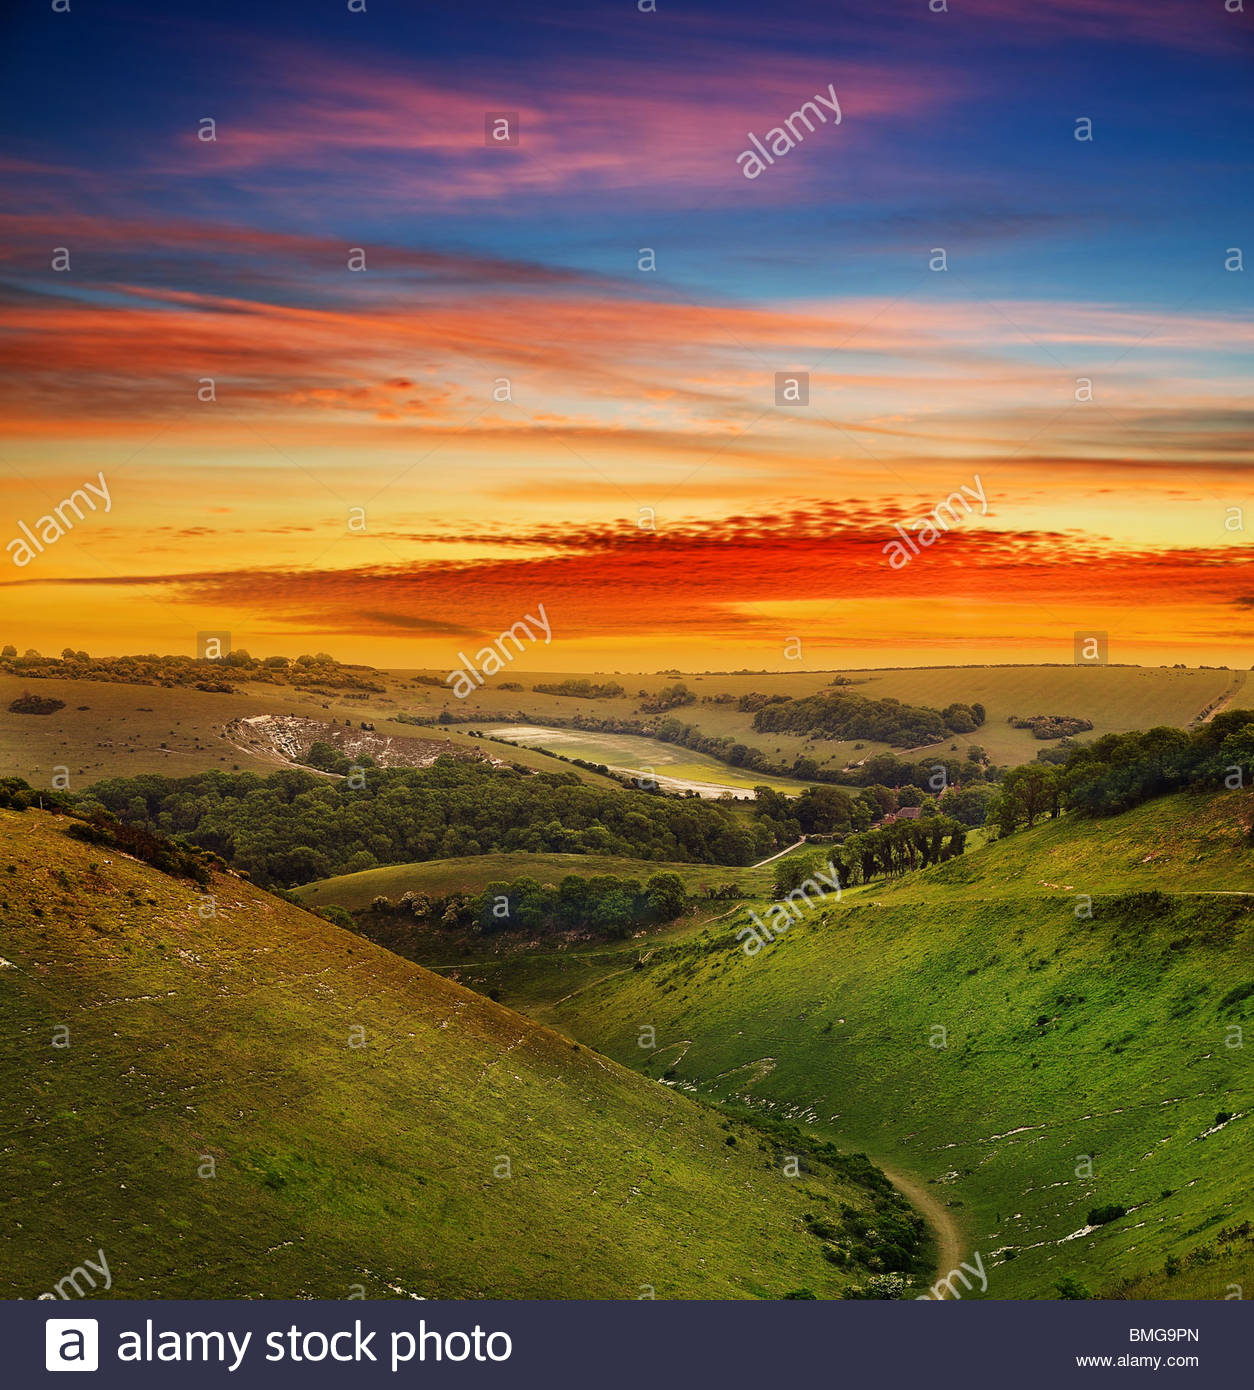 ... Photo - Evening landscape sunset over Devil's Dyke - west sussex -uk